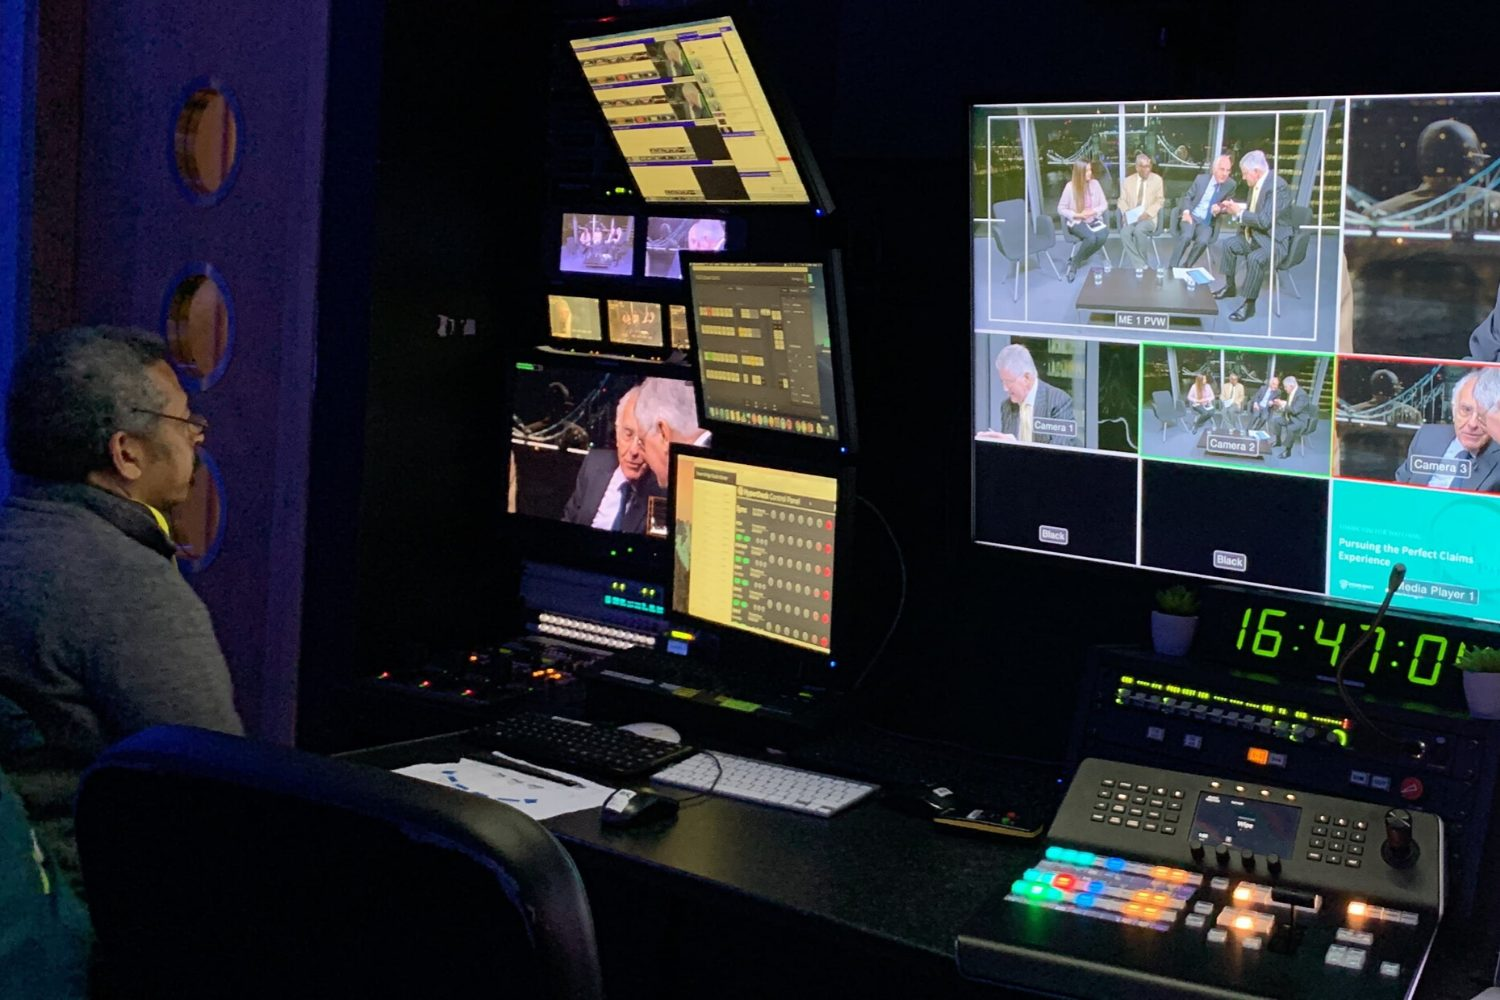 webcasting-behind-the-scenes-monitors jpg